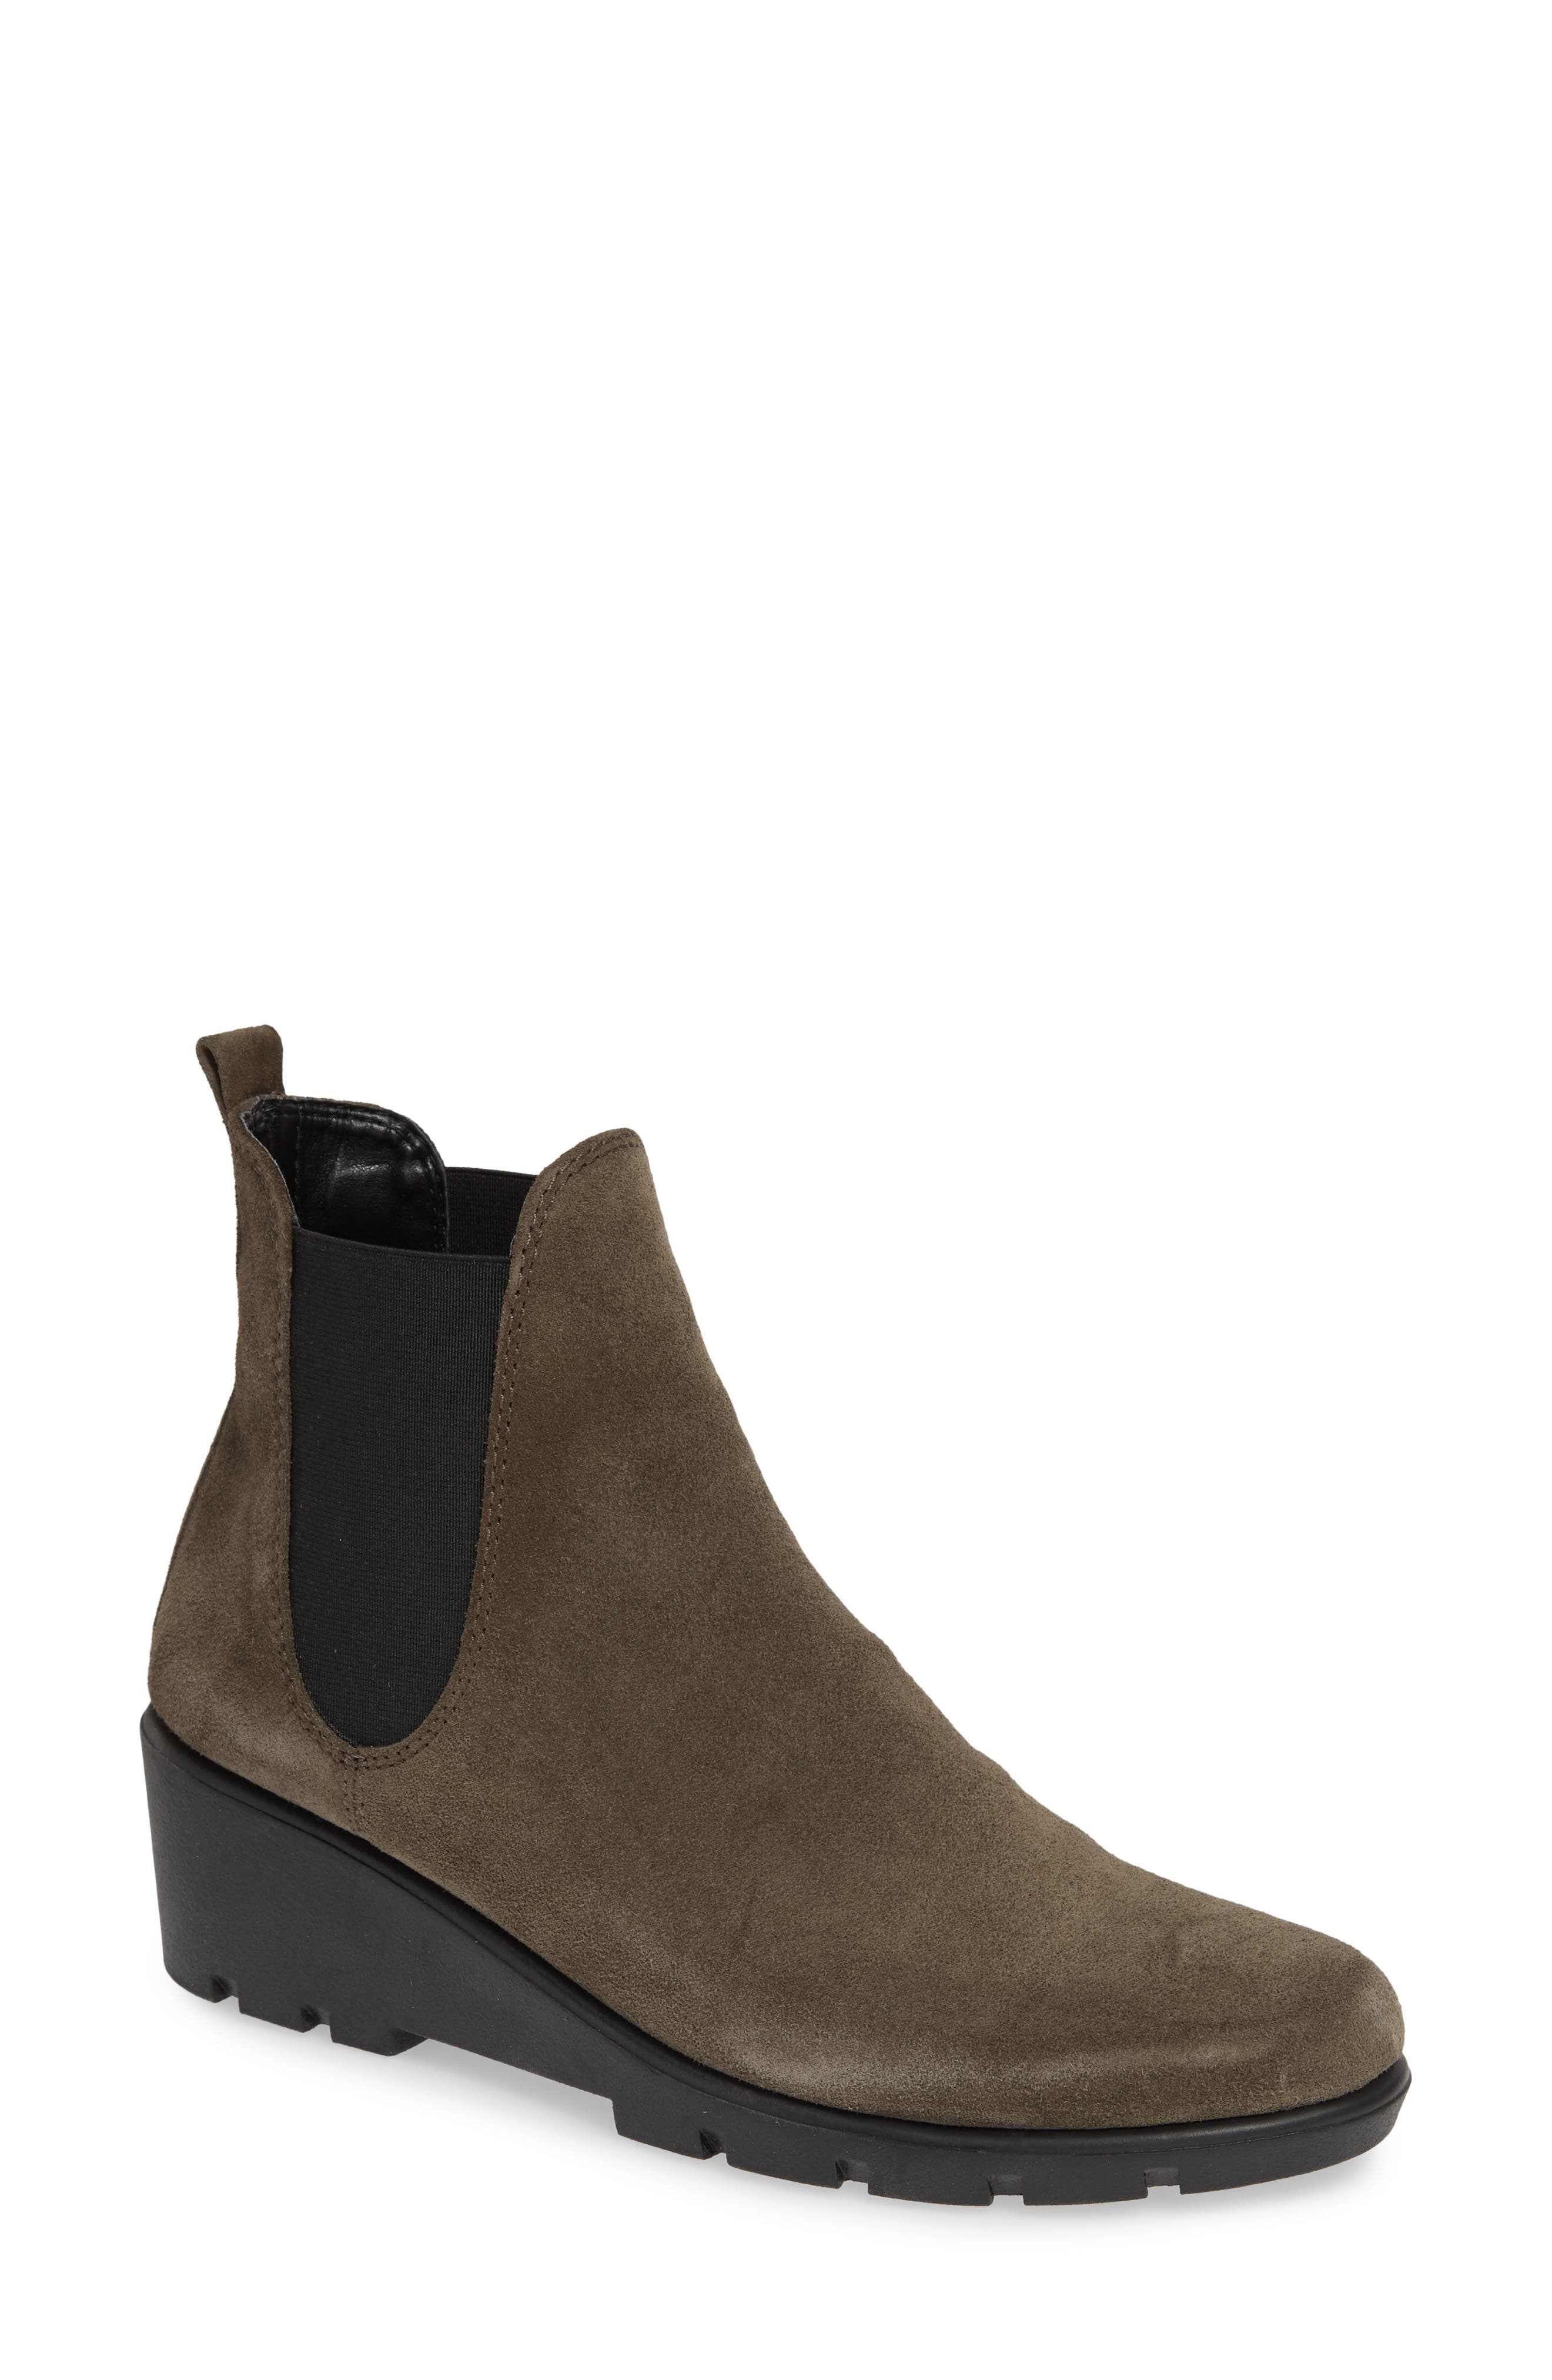 THE FLEXX Slimmer Chelsea Wedge Boot, Main, color, BROWN SUEDE